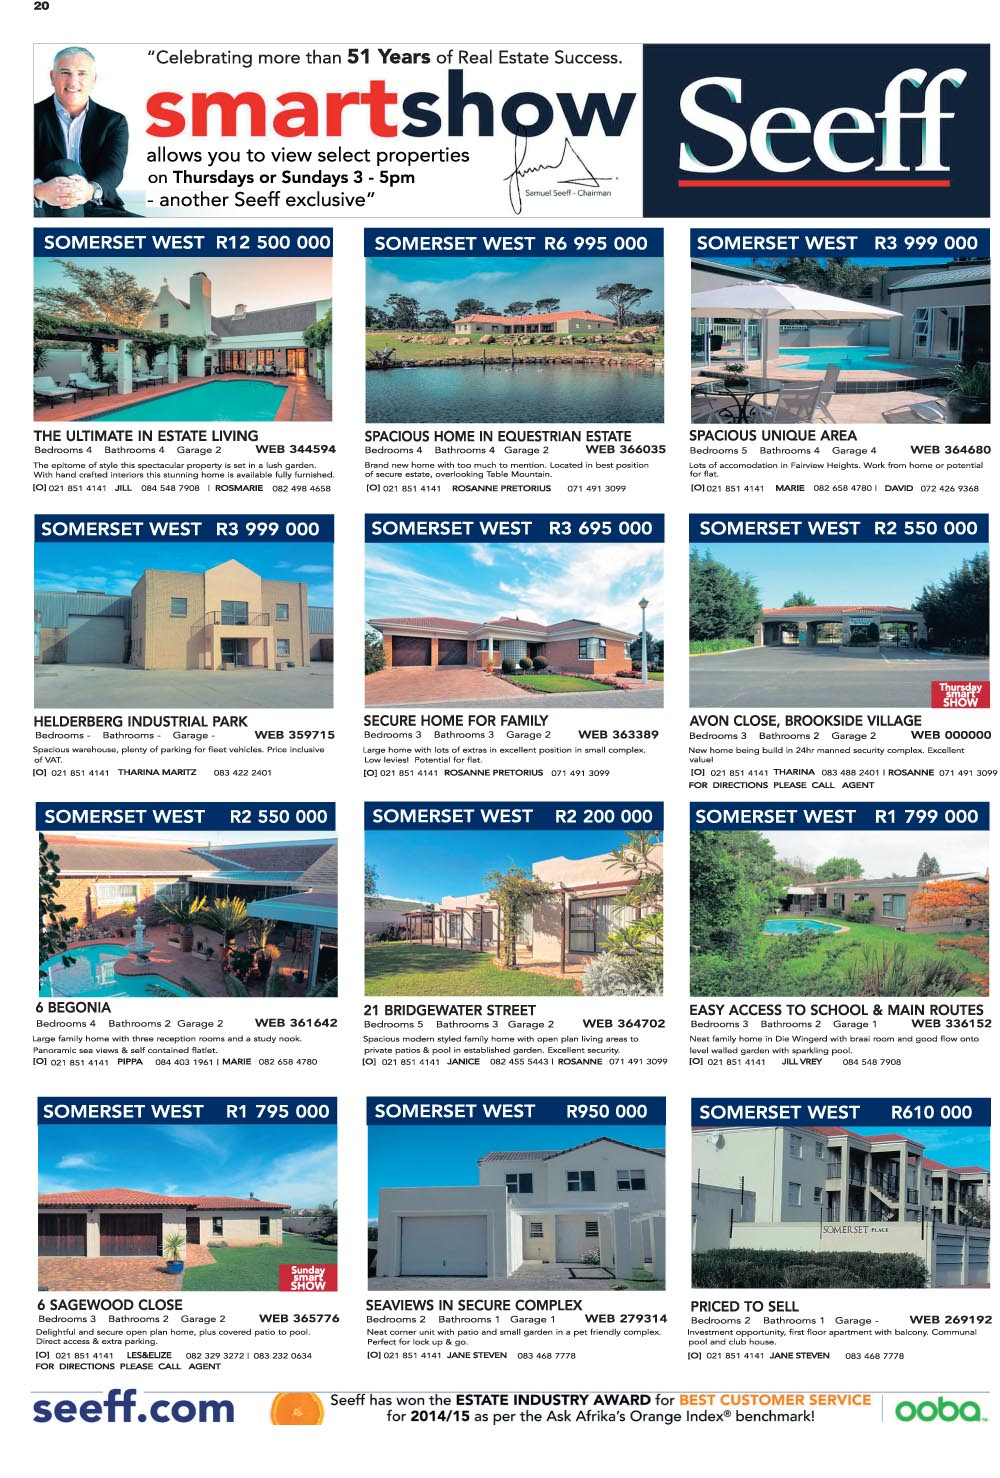 You are browsing images from the article: Property Selection-October 28 2015